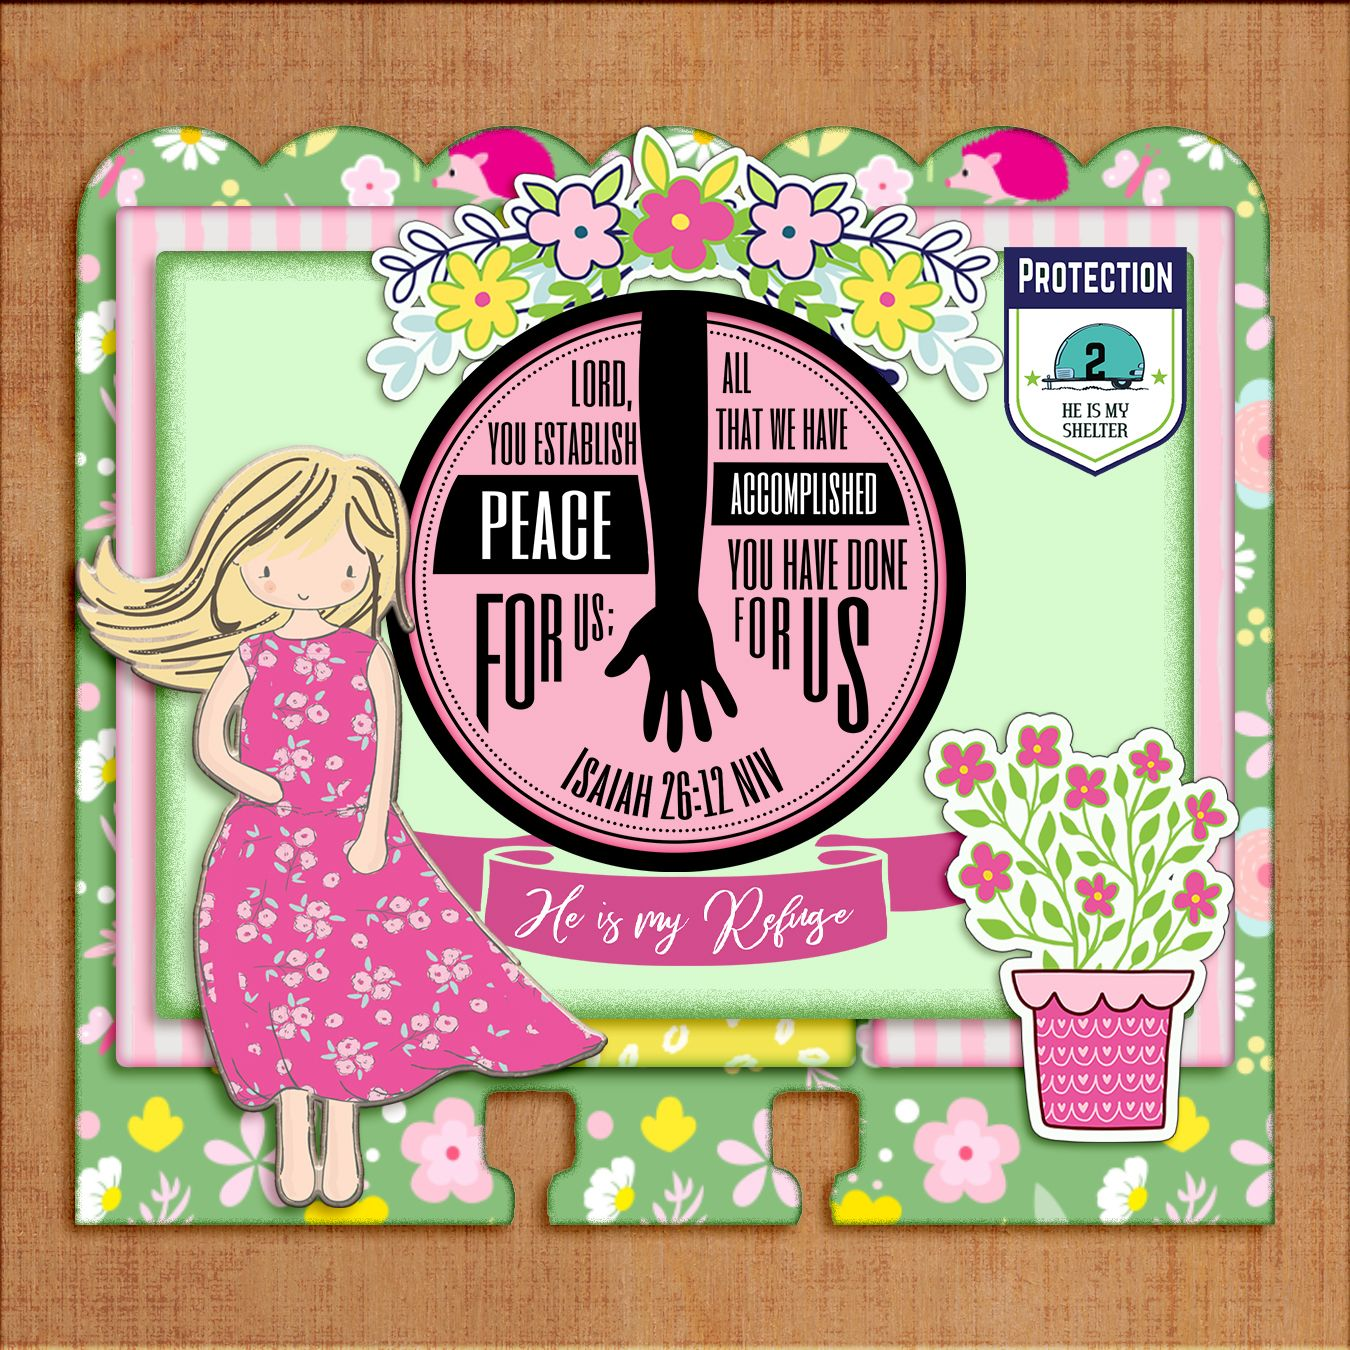 Protection Bible Journal Dex Card Kit: 20 PDFs & 200+ PNGs, 16 Retro Campers, 14 Cute Girls, 48 Rolodex Cards, 30 Typographical Verses